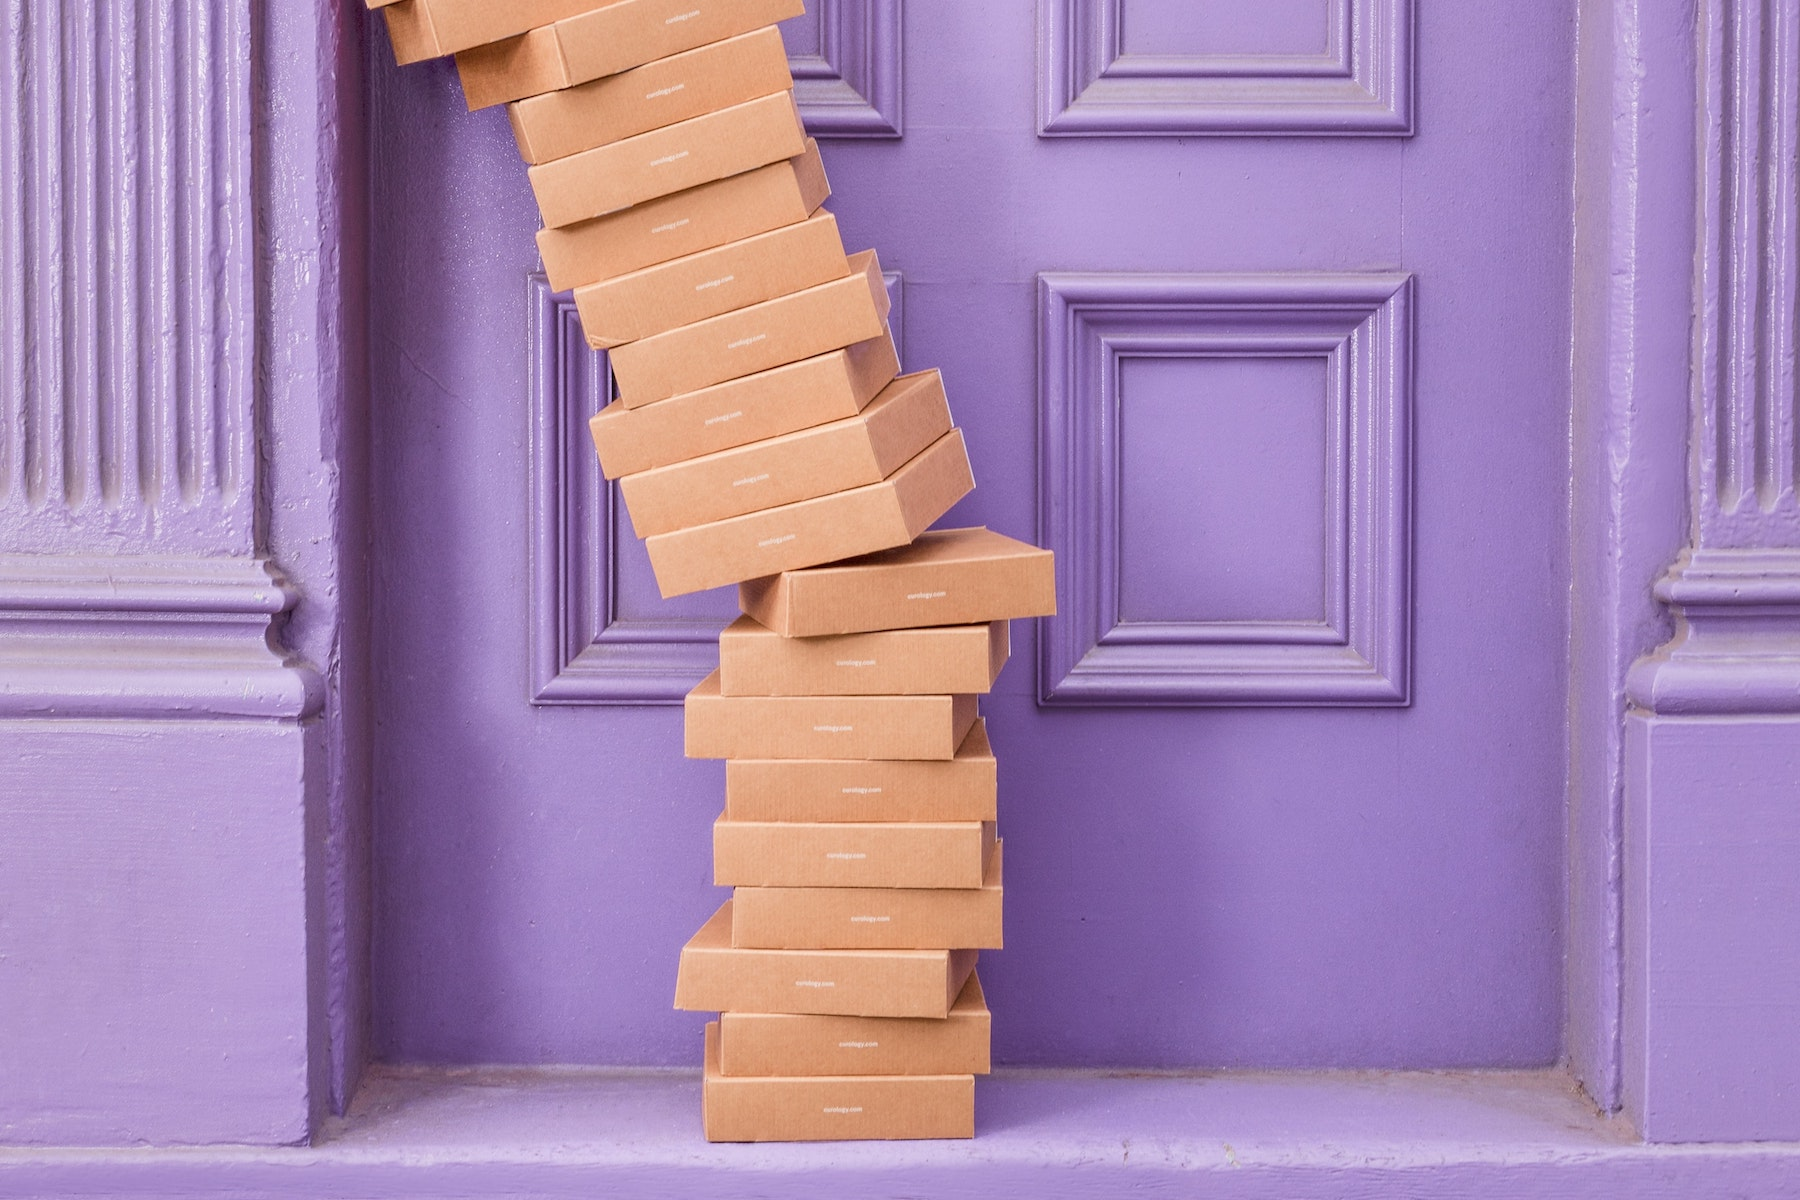 stack of fashion ecommerce boxes outside a front door